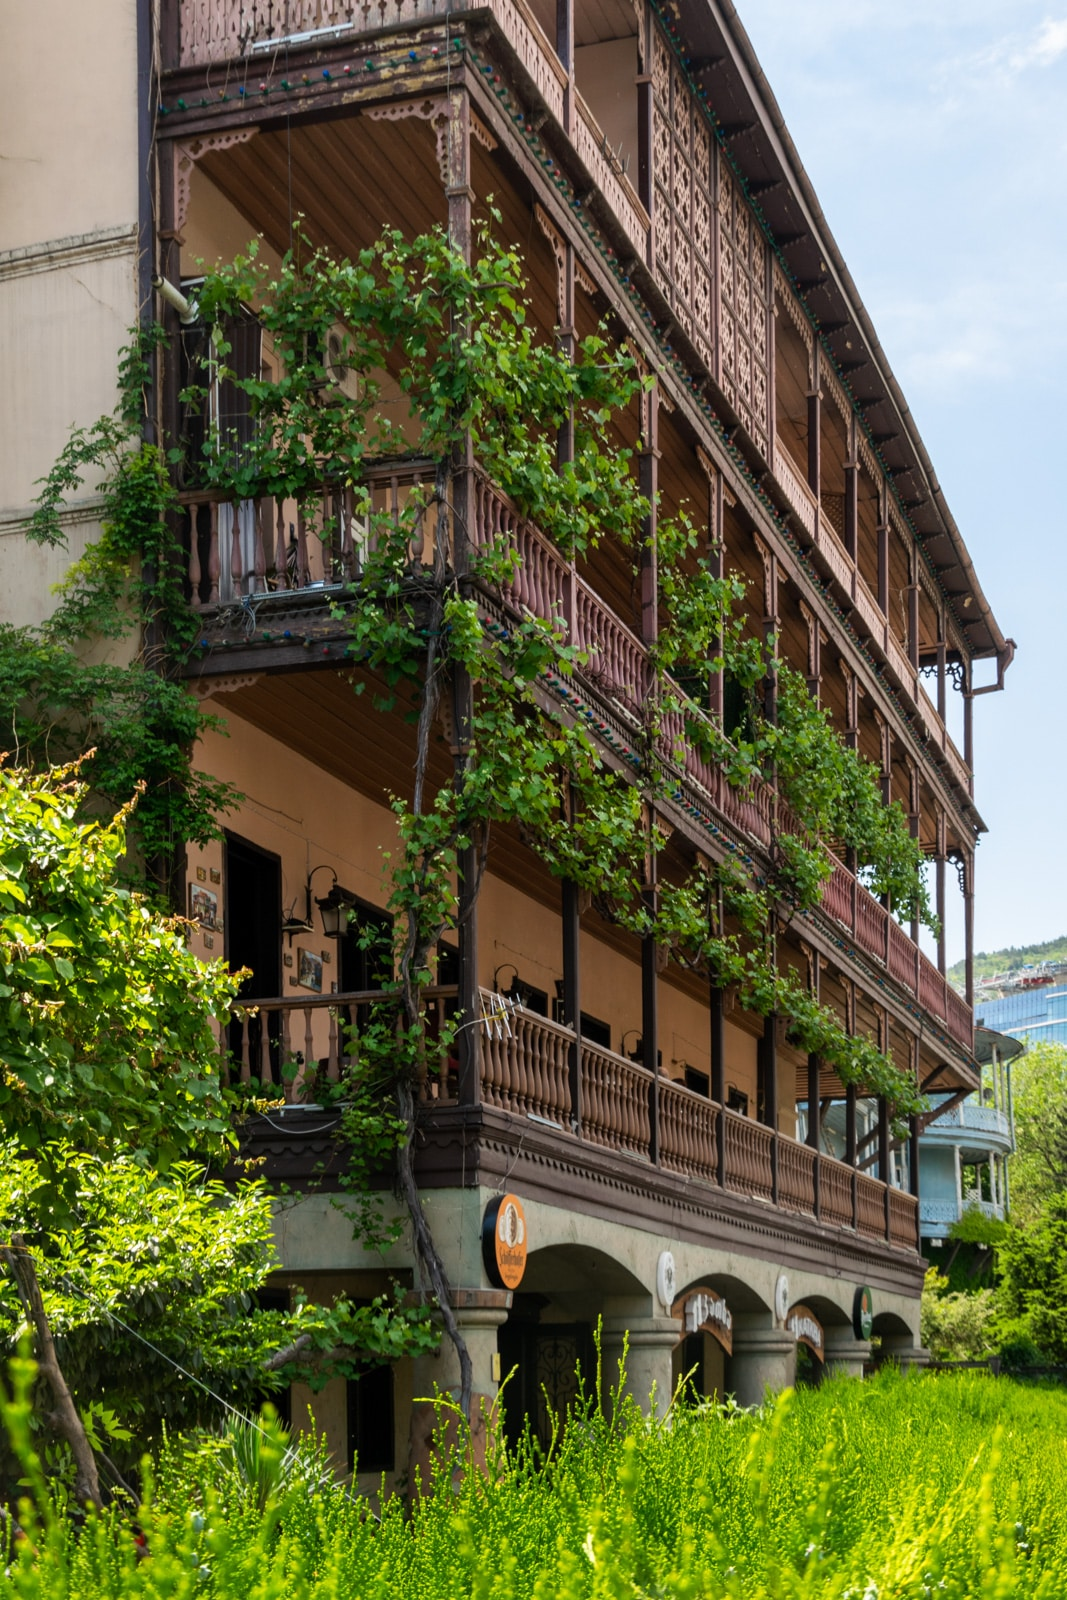 Old building with plants on balconies in Tbilisi, Georgia